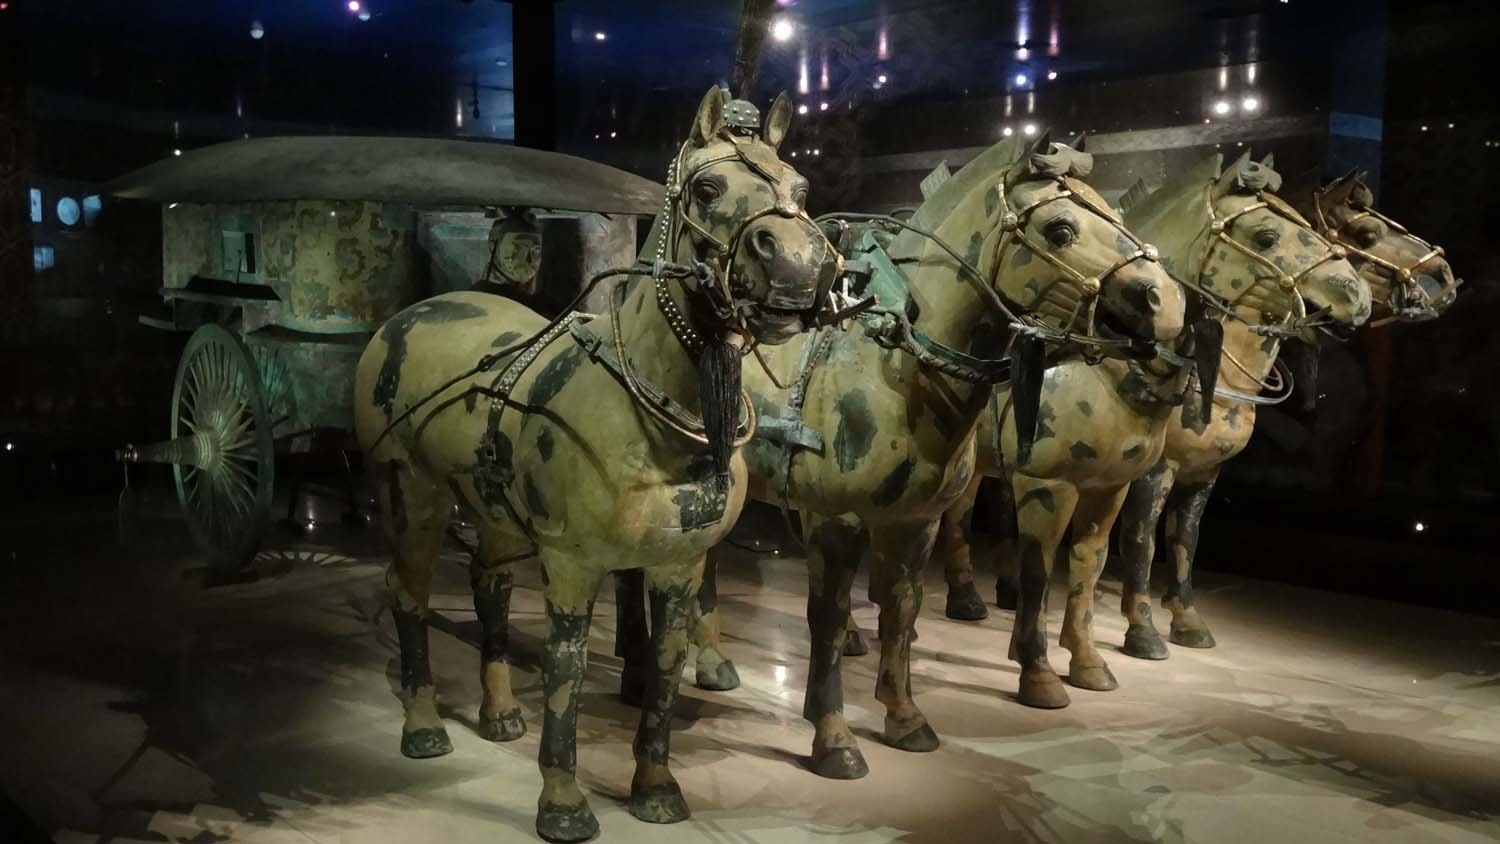 one of the chariots with 4 horses